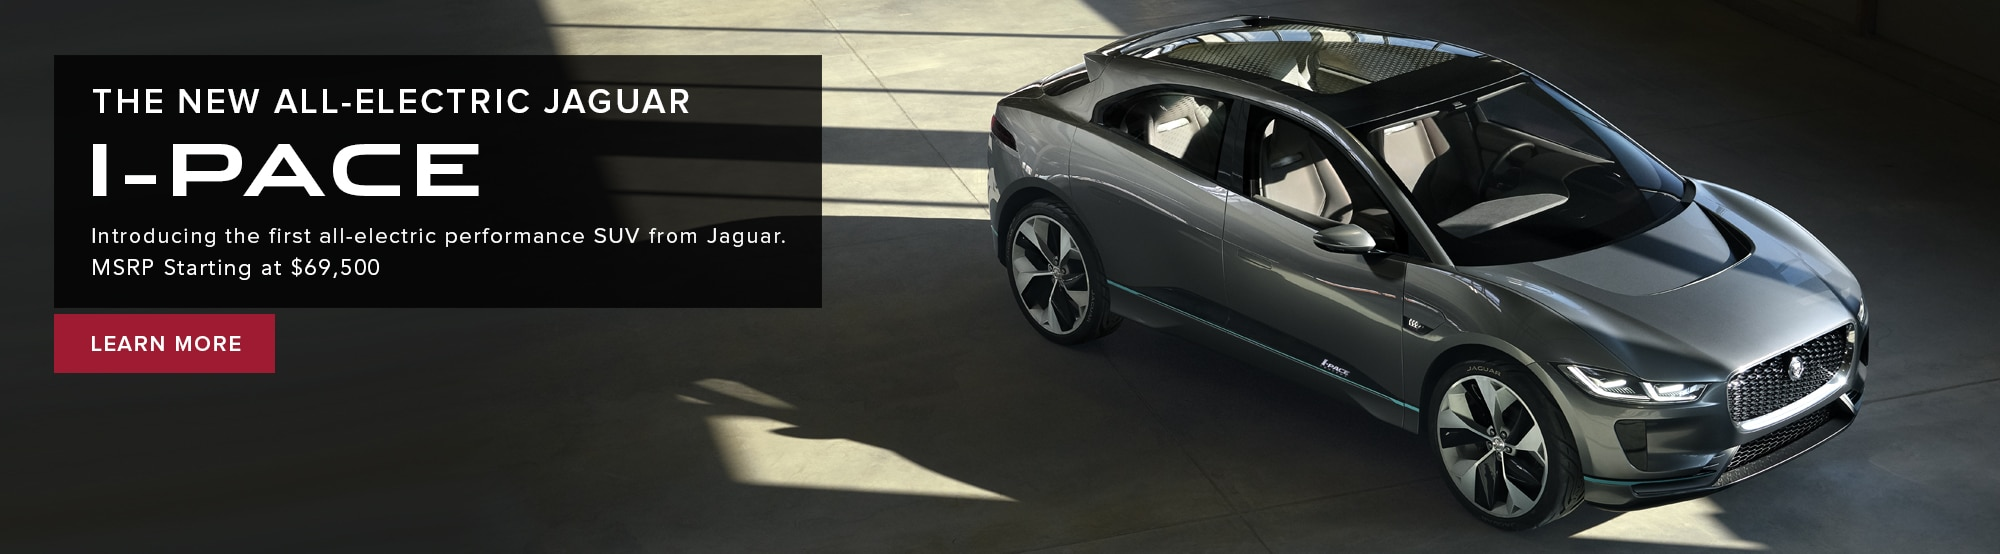 bellevue awd sport inventory utility pace s in new jaguar e